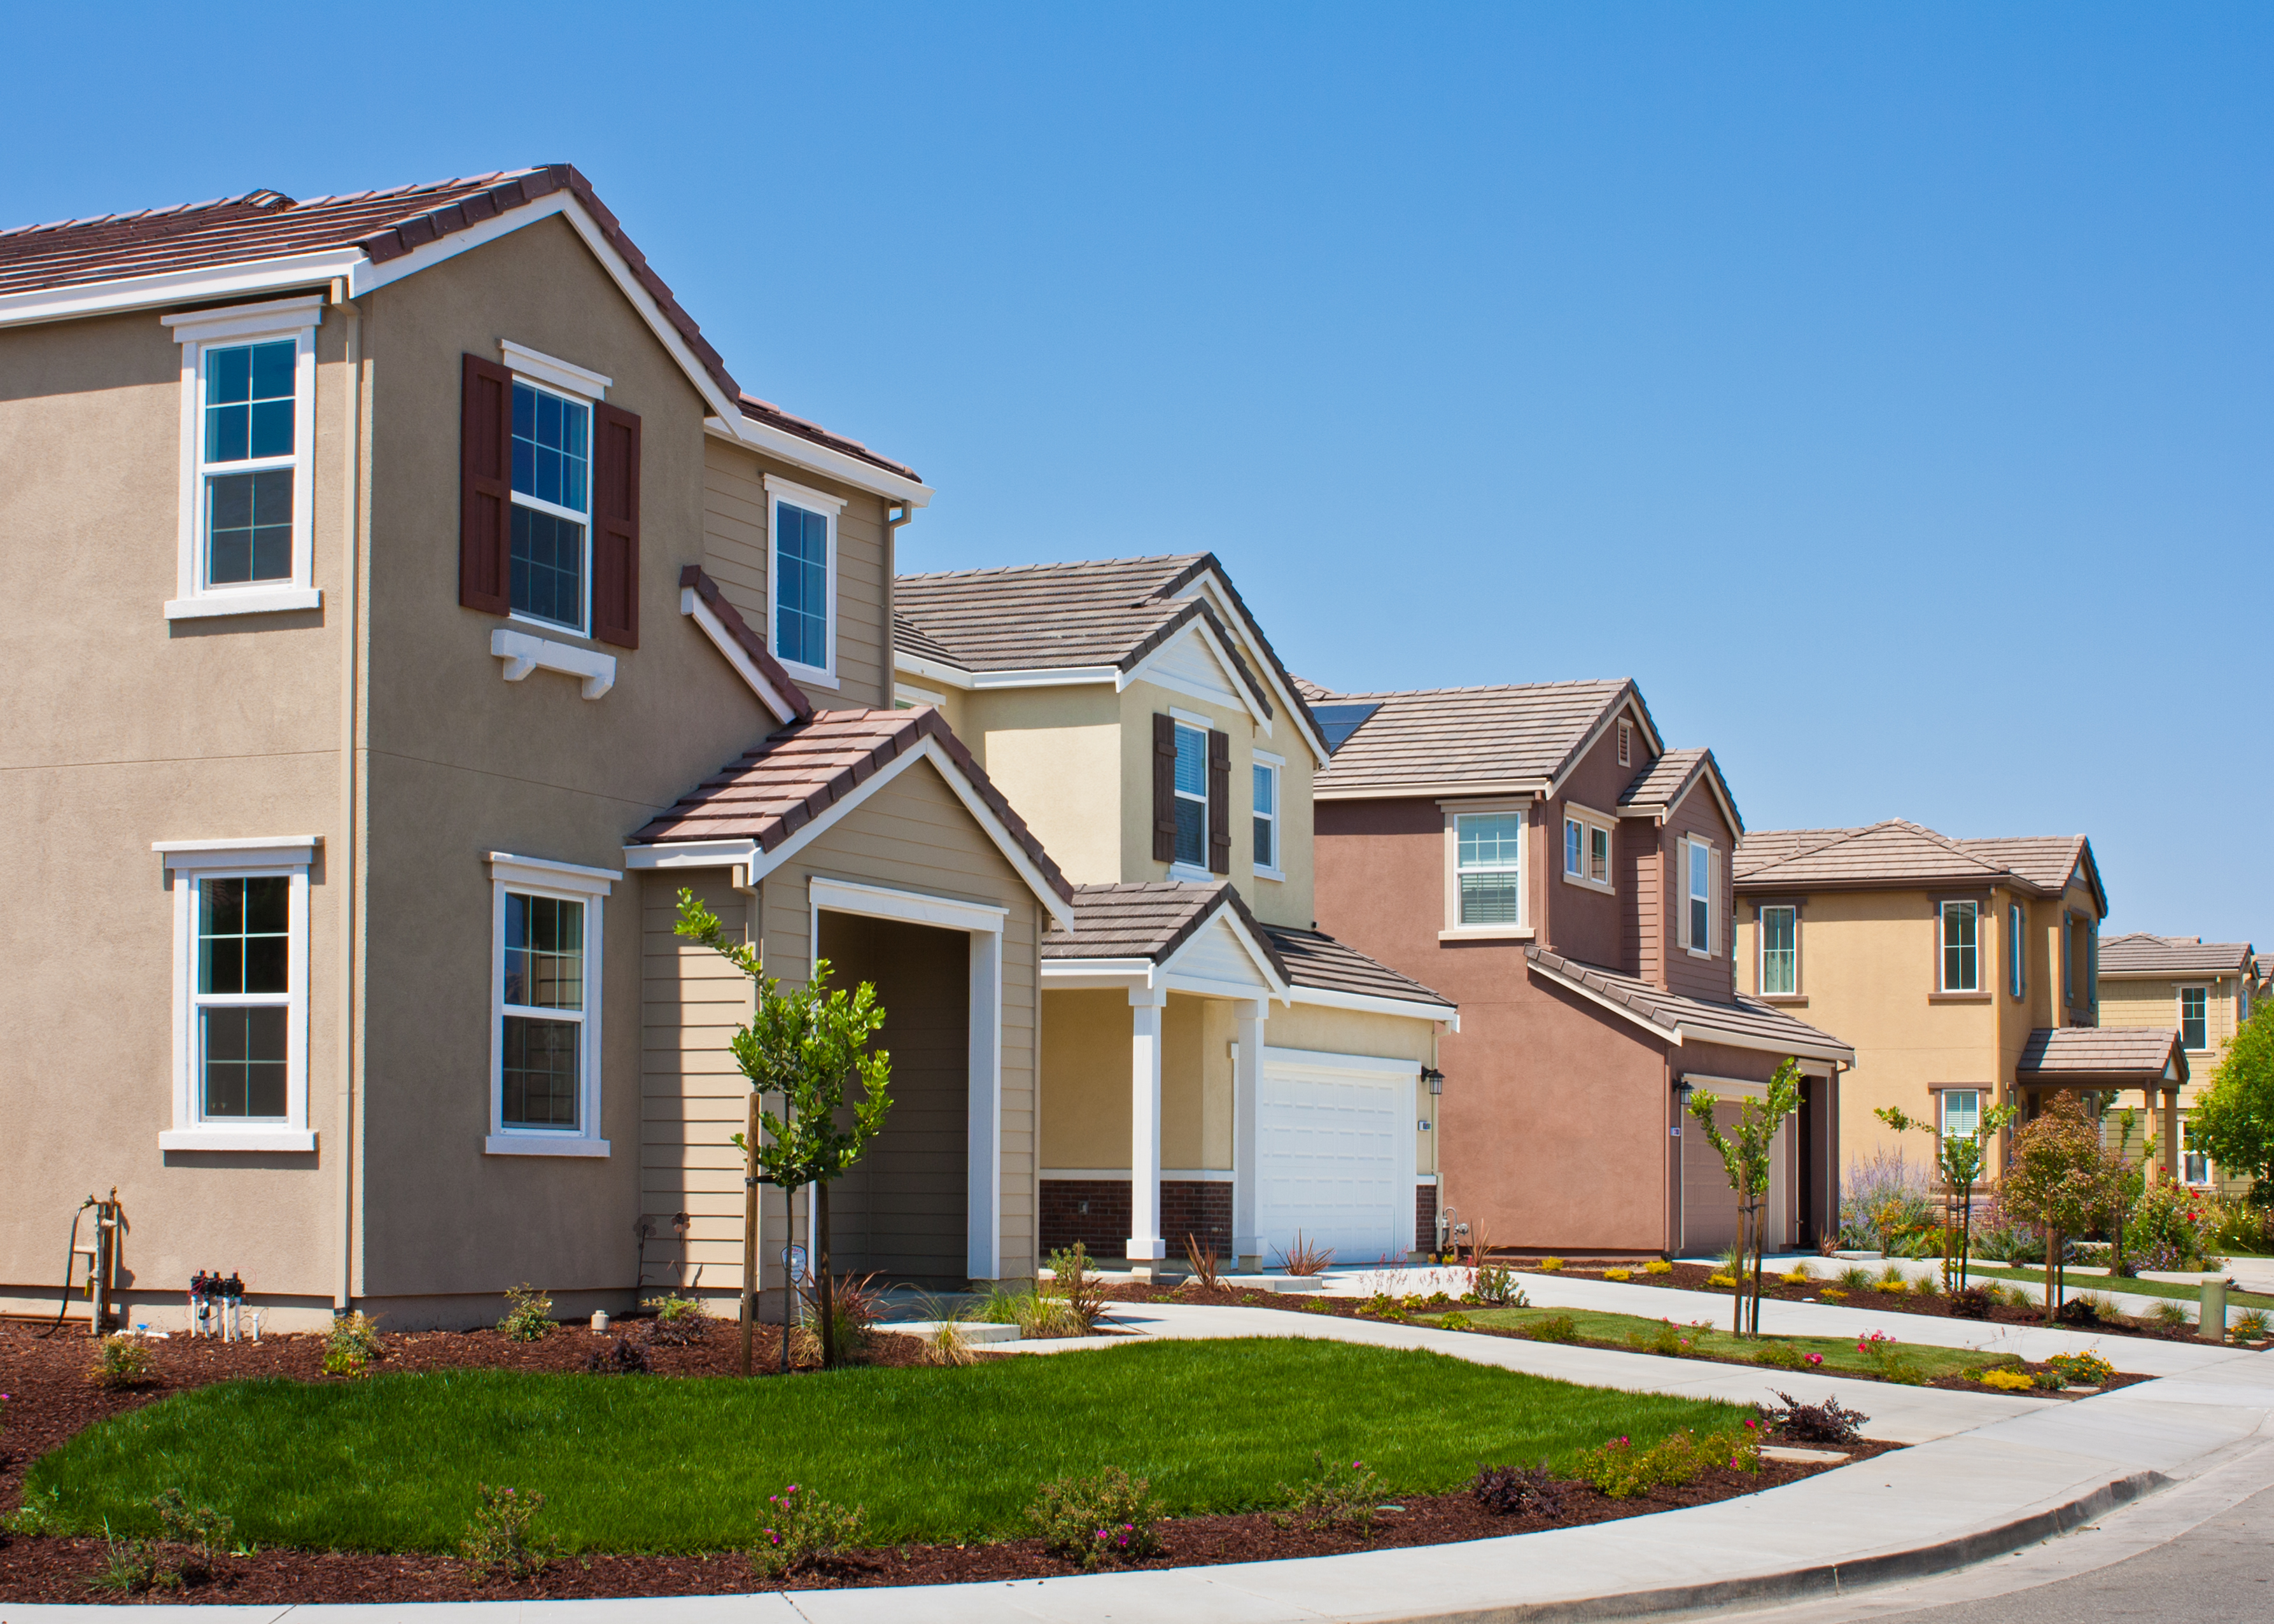 Homeownership in California lowest since the 1940s, finds report